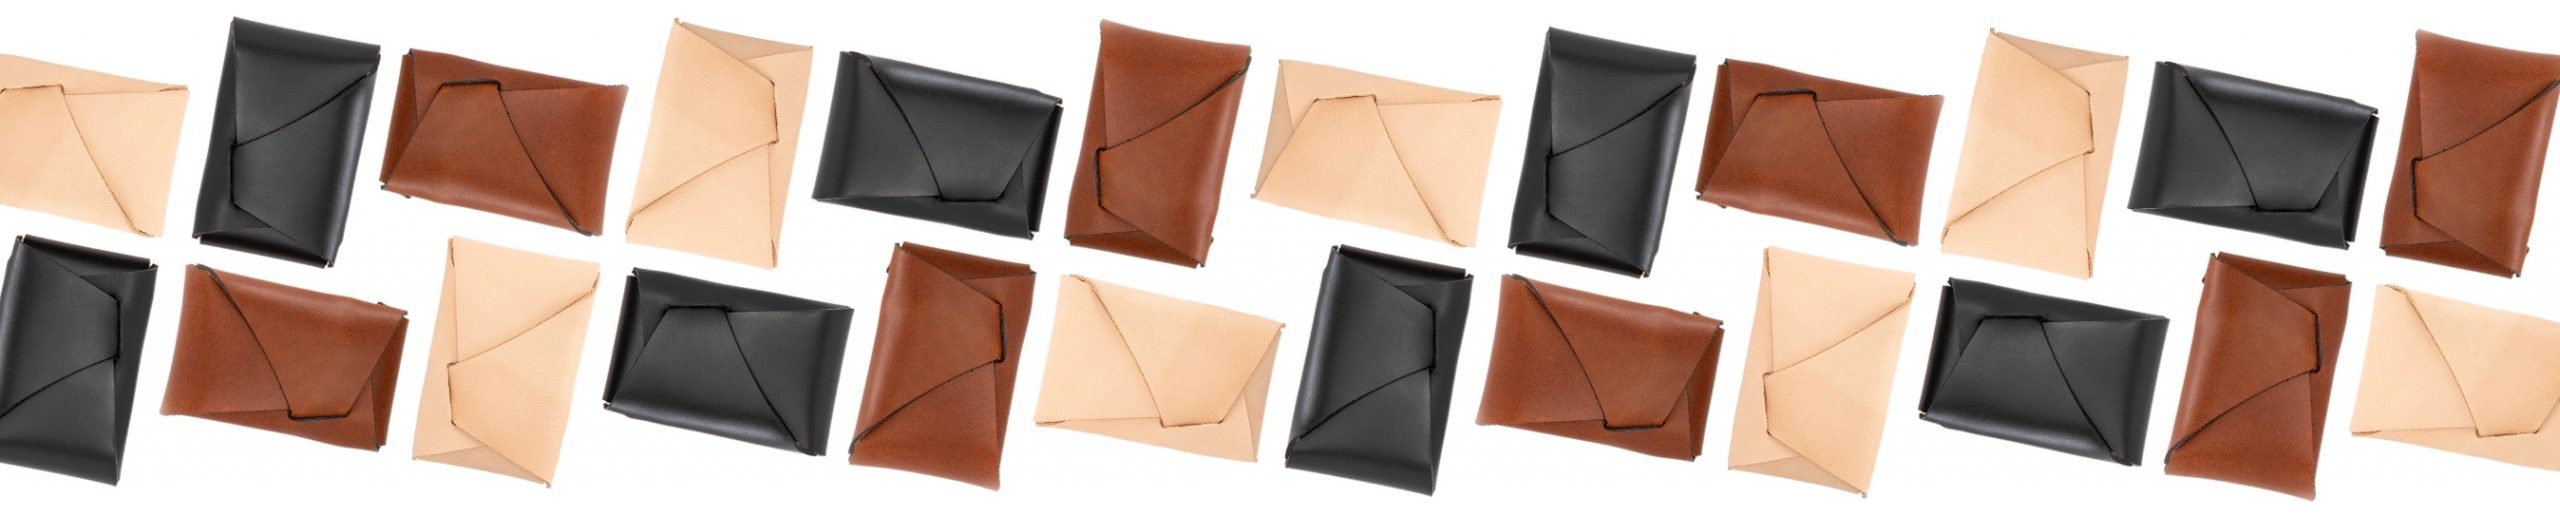 This unique dugout kit is a leather smoking pouch that holds a one-hitter pipe and other accessories, all folded up into a stylish design. Comes in brown, black and natural colored leather, sourced in the USA.